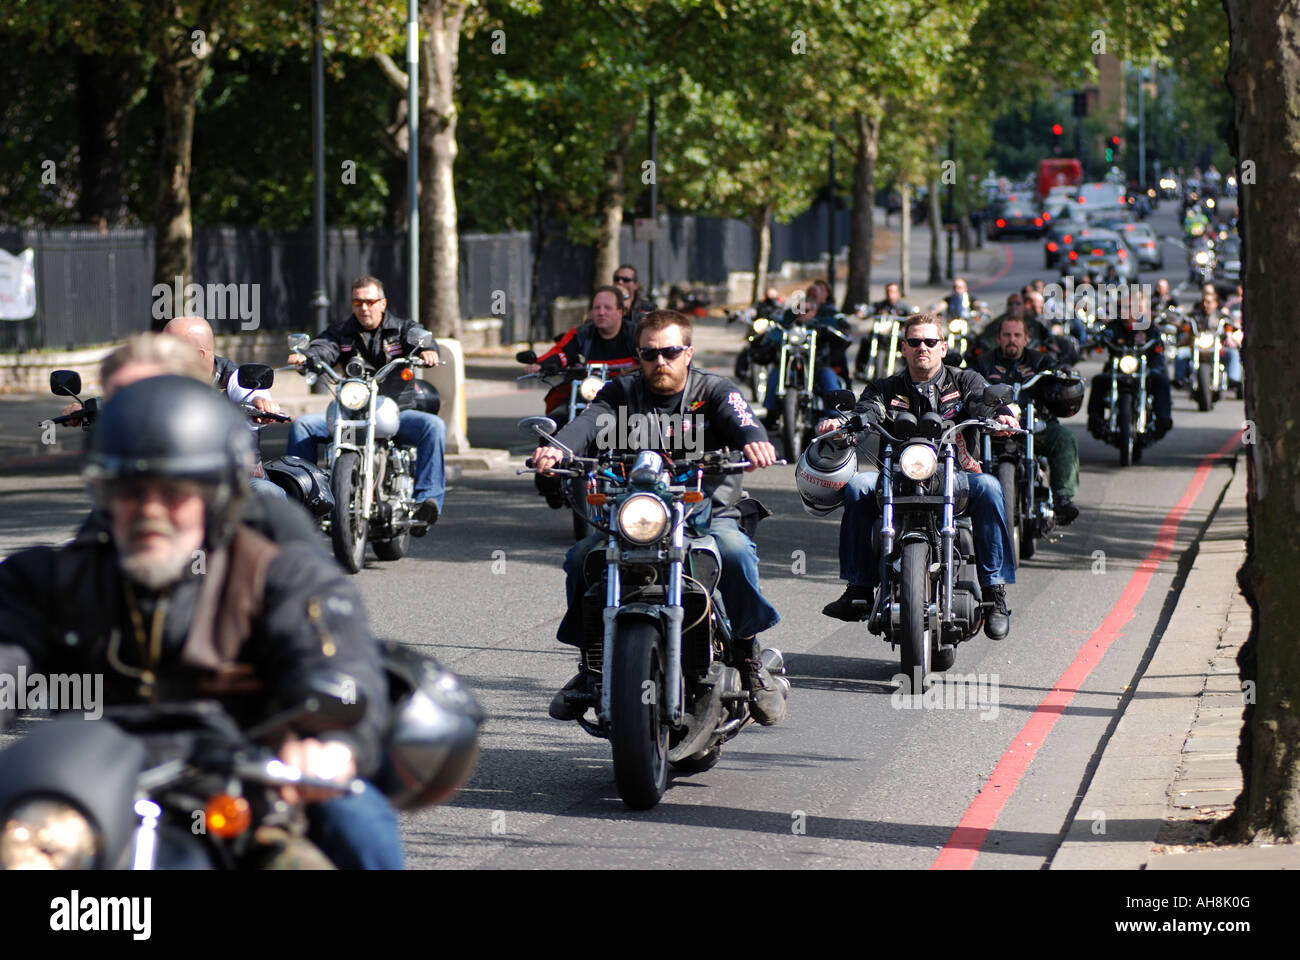 Hells Angels Stock Photos & Hells Angels Stock Images - Alamy